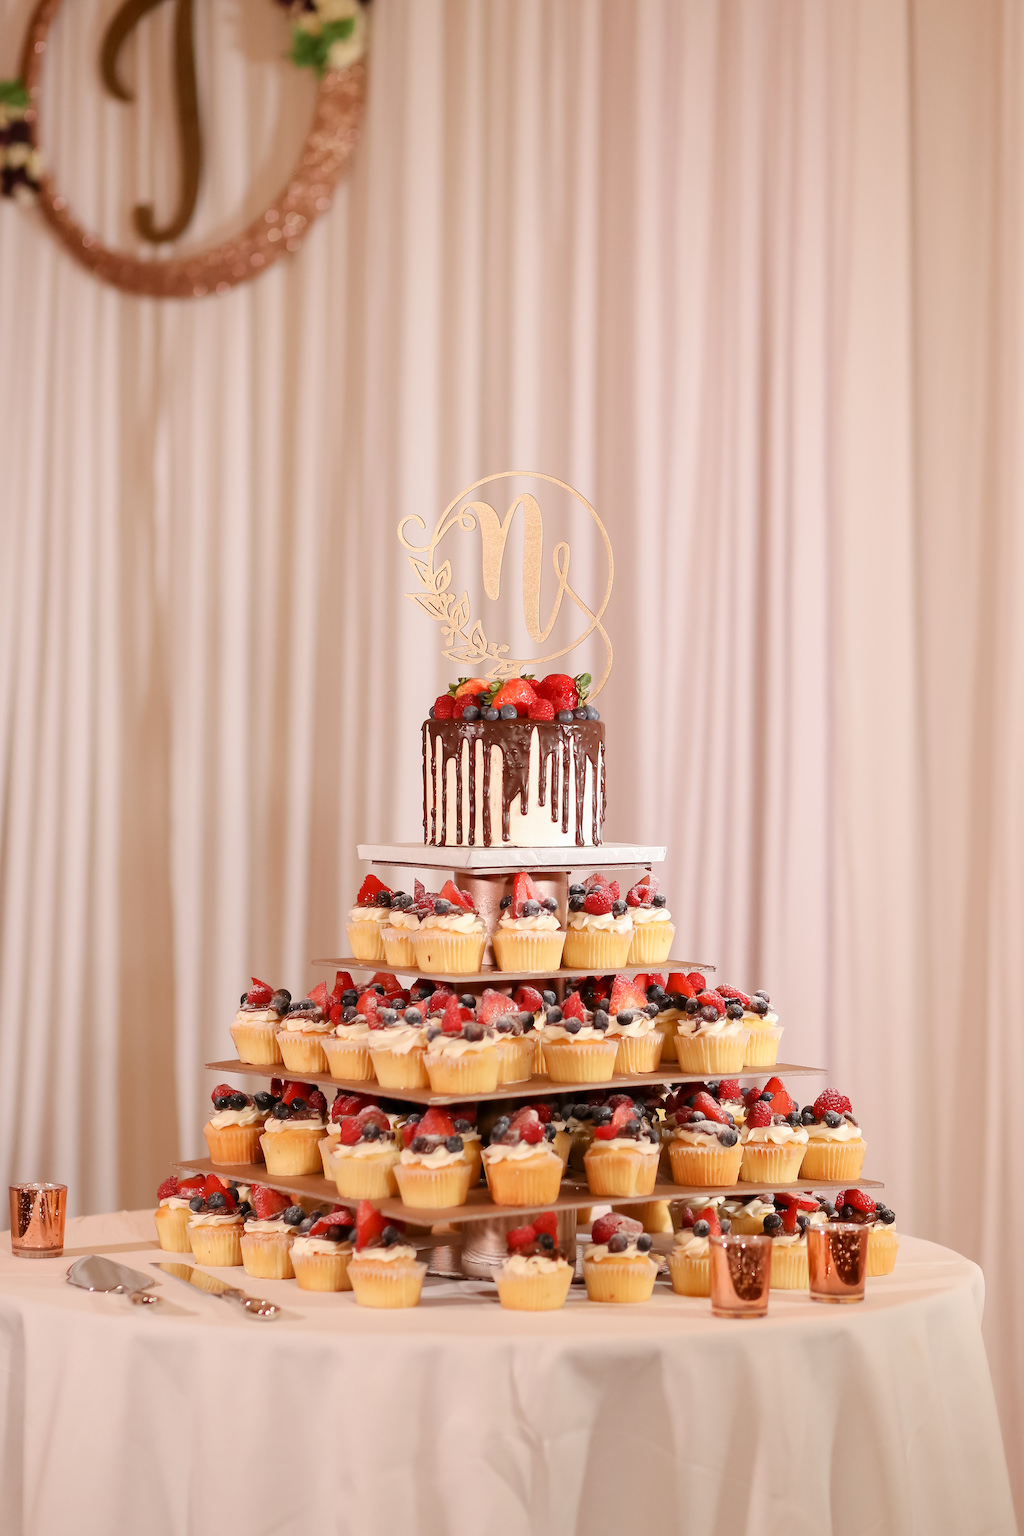 Wedding Reception Dessert Table, One Tier White and Chocolate Drip Wedding Cake with Strawberries and Gold Laser Cut Cake Topper on Cupcake Tier   Tampa Bay Wedding Photographer Lifelong Photography Studios   Wedding Planner Special Moments Event Planning